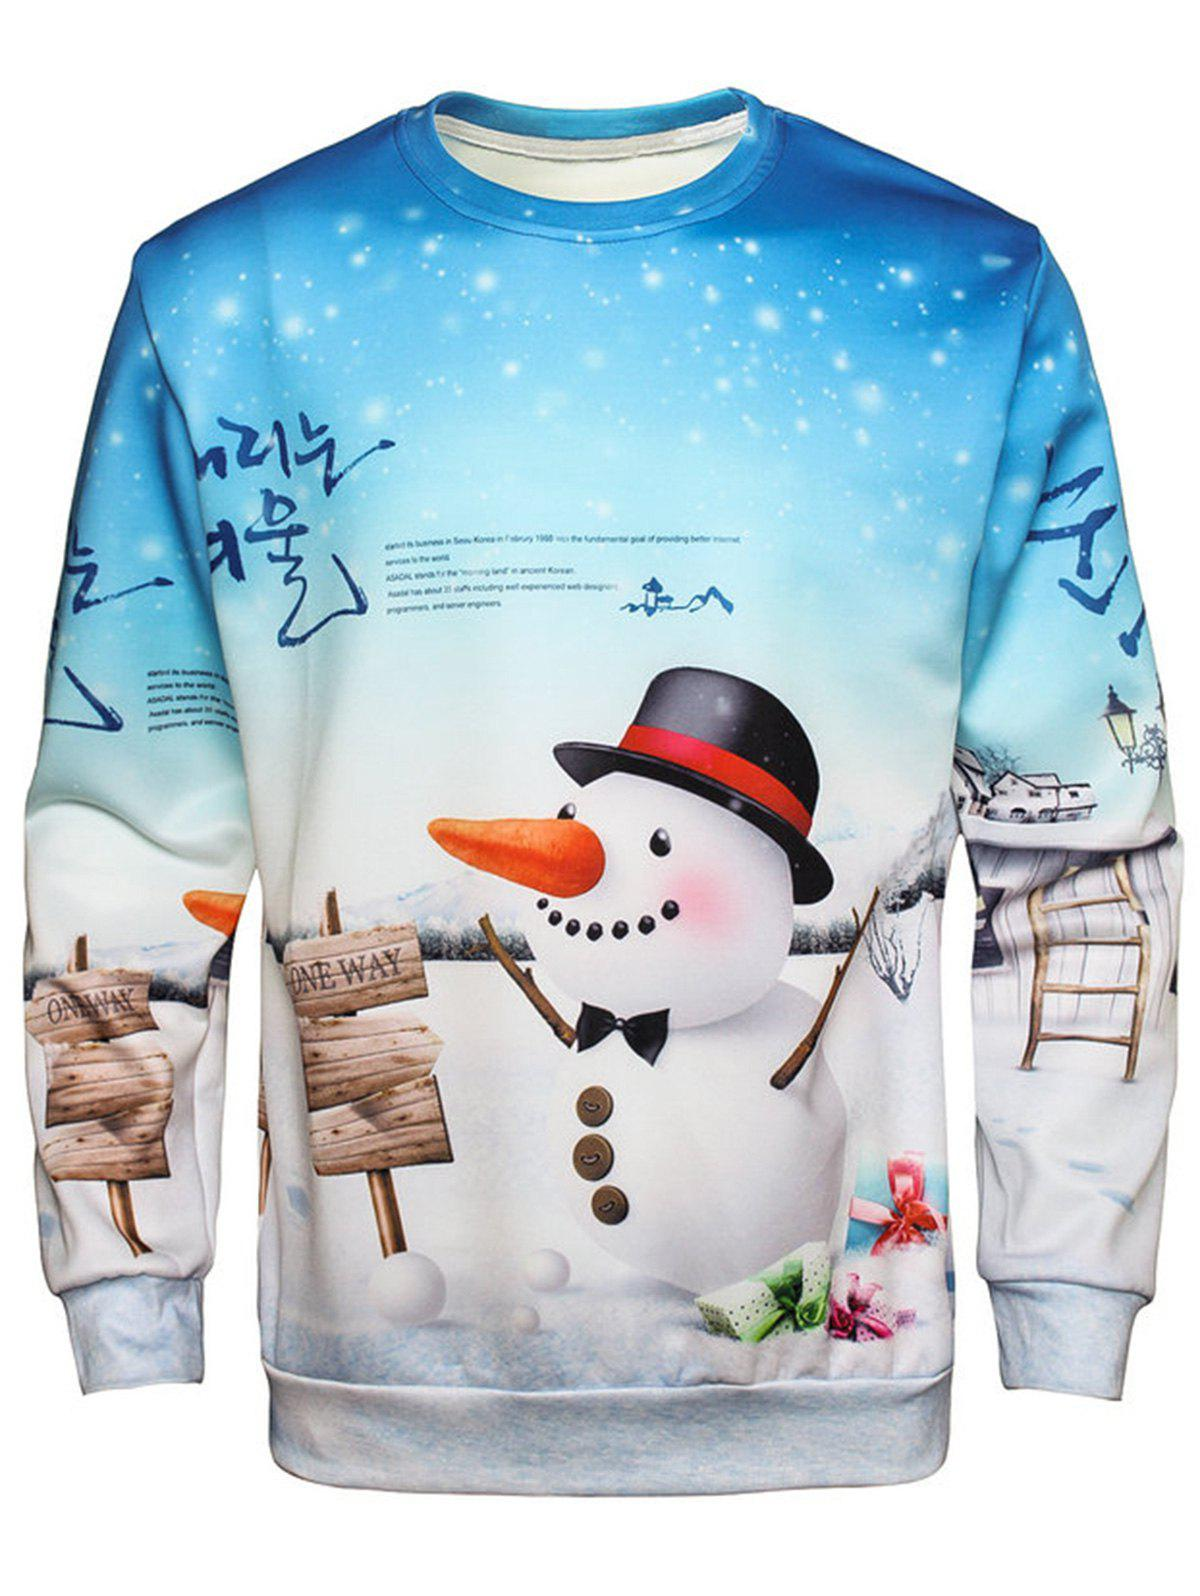 Christmas Snowman Pullover Sweatshirt manufacturing systems modelling